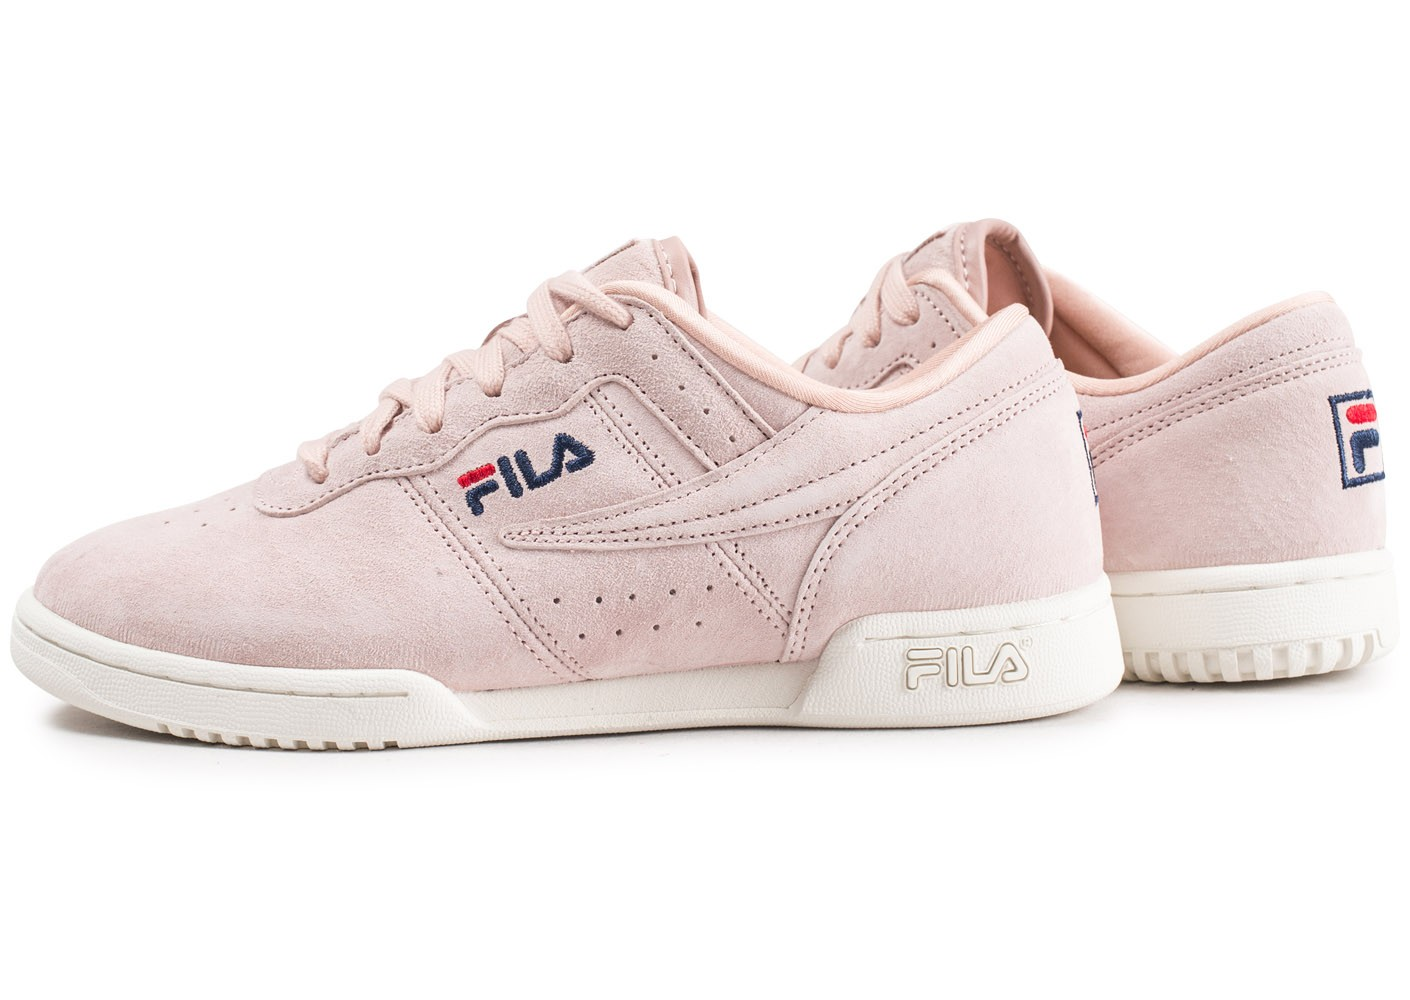 Lila Chaussures Chausport Femme Fila Baskets Fitness Original NO8PkX0nw